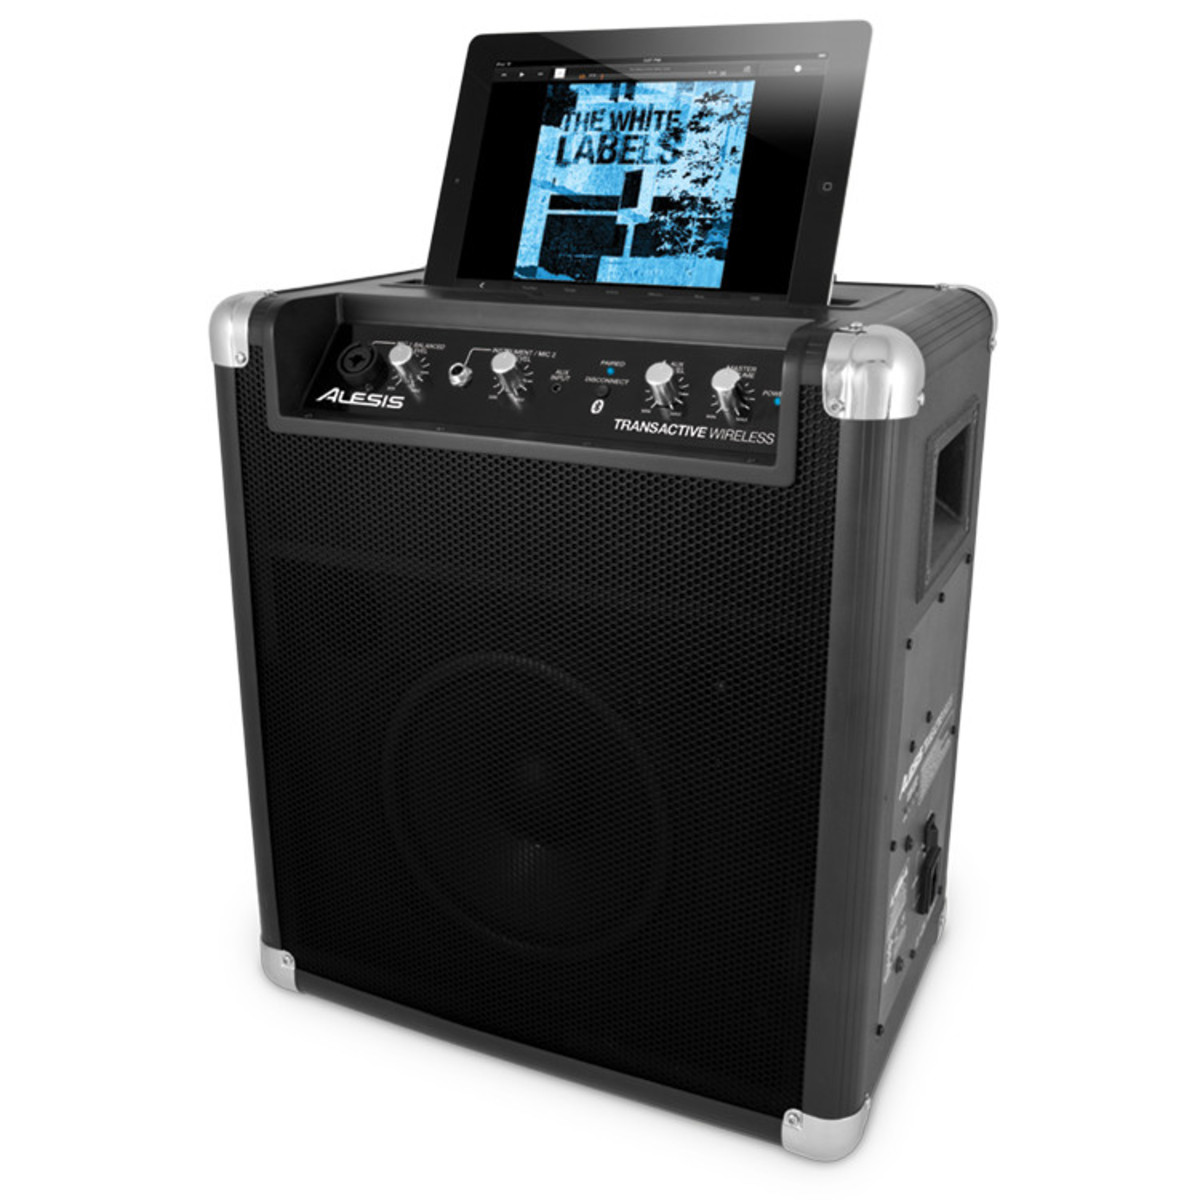 alesis transactive wireless portable active pa speaker system at. Black Bedroom Furniture Sets. Home Design Ideas